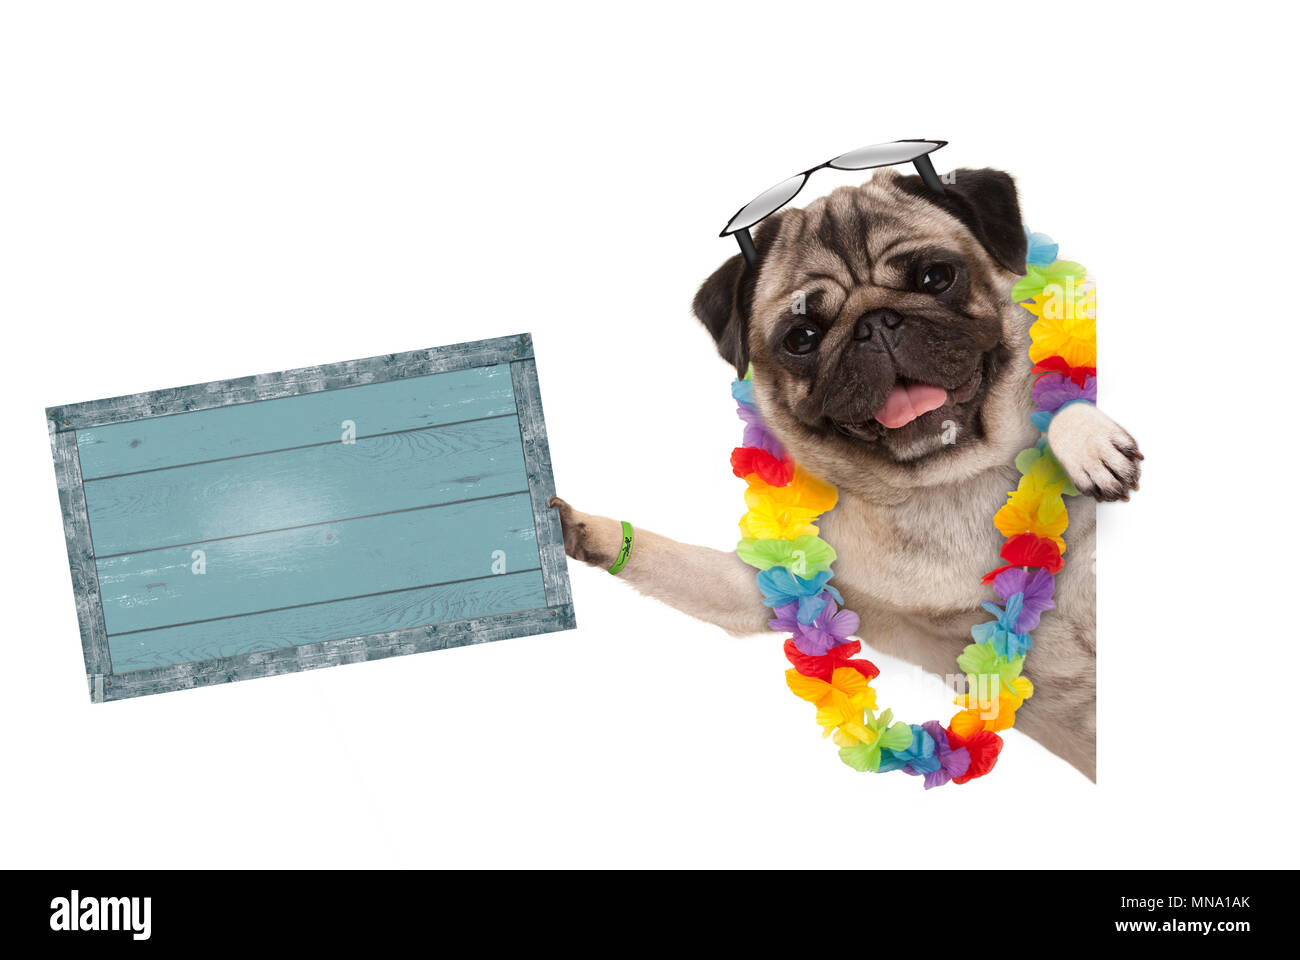 frolic summer pug dog with hawaiian flower garland and sunglasses, holding up blue vintage wooden board, isolated on white background - Stock Image